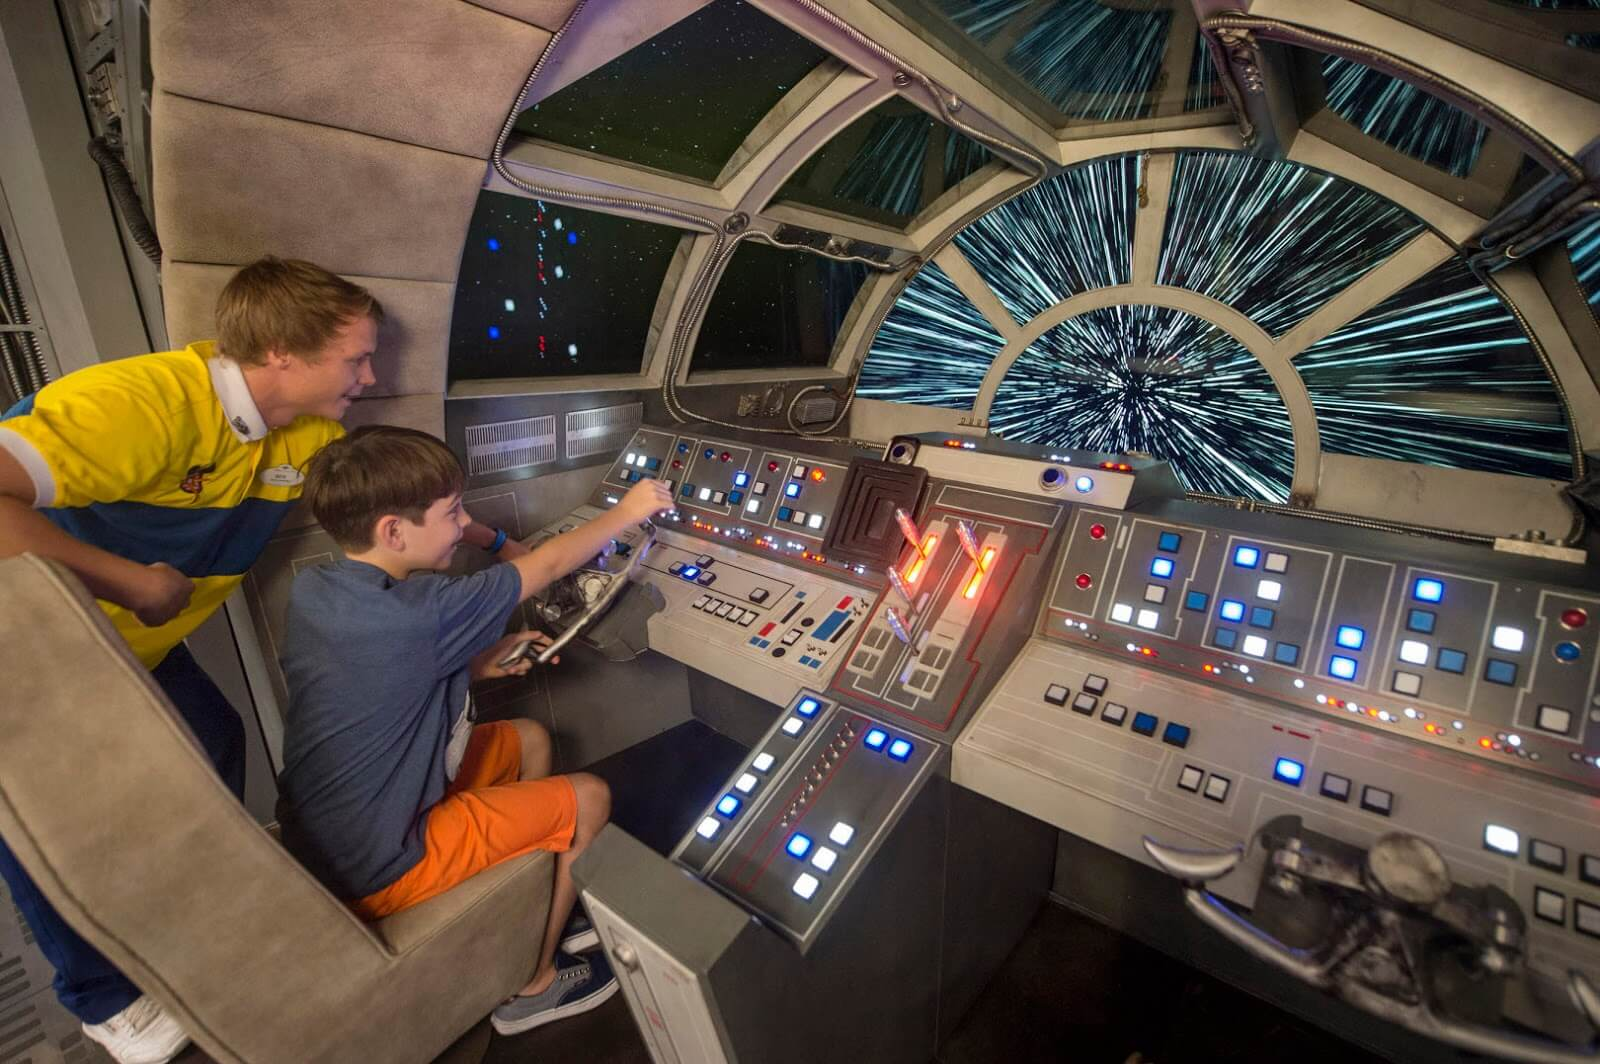 Star Wars: Galaxy's Edge no Disney's Hollywood Studios em Orlando: atração